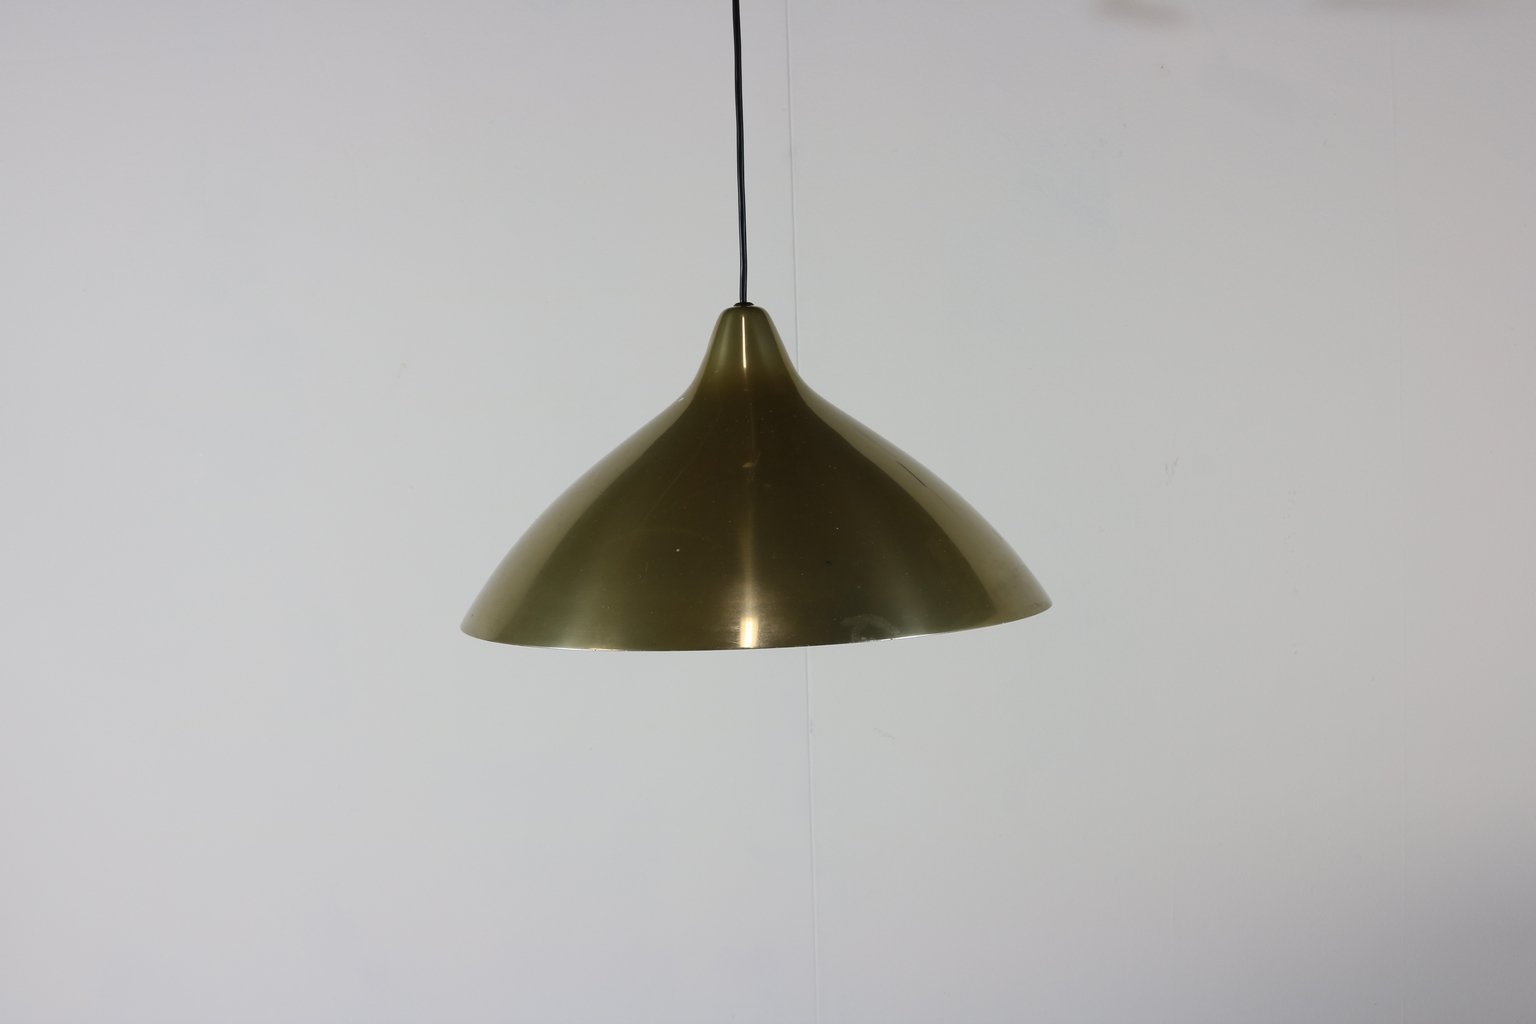 Pendant by Lisa Johansson-Pape for Orno